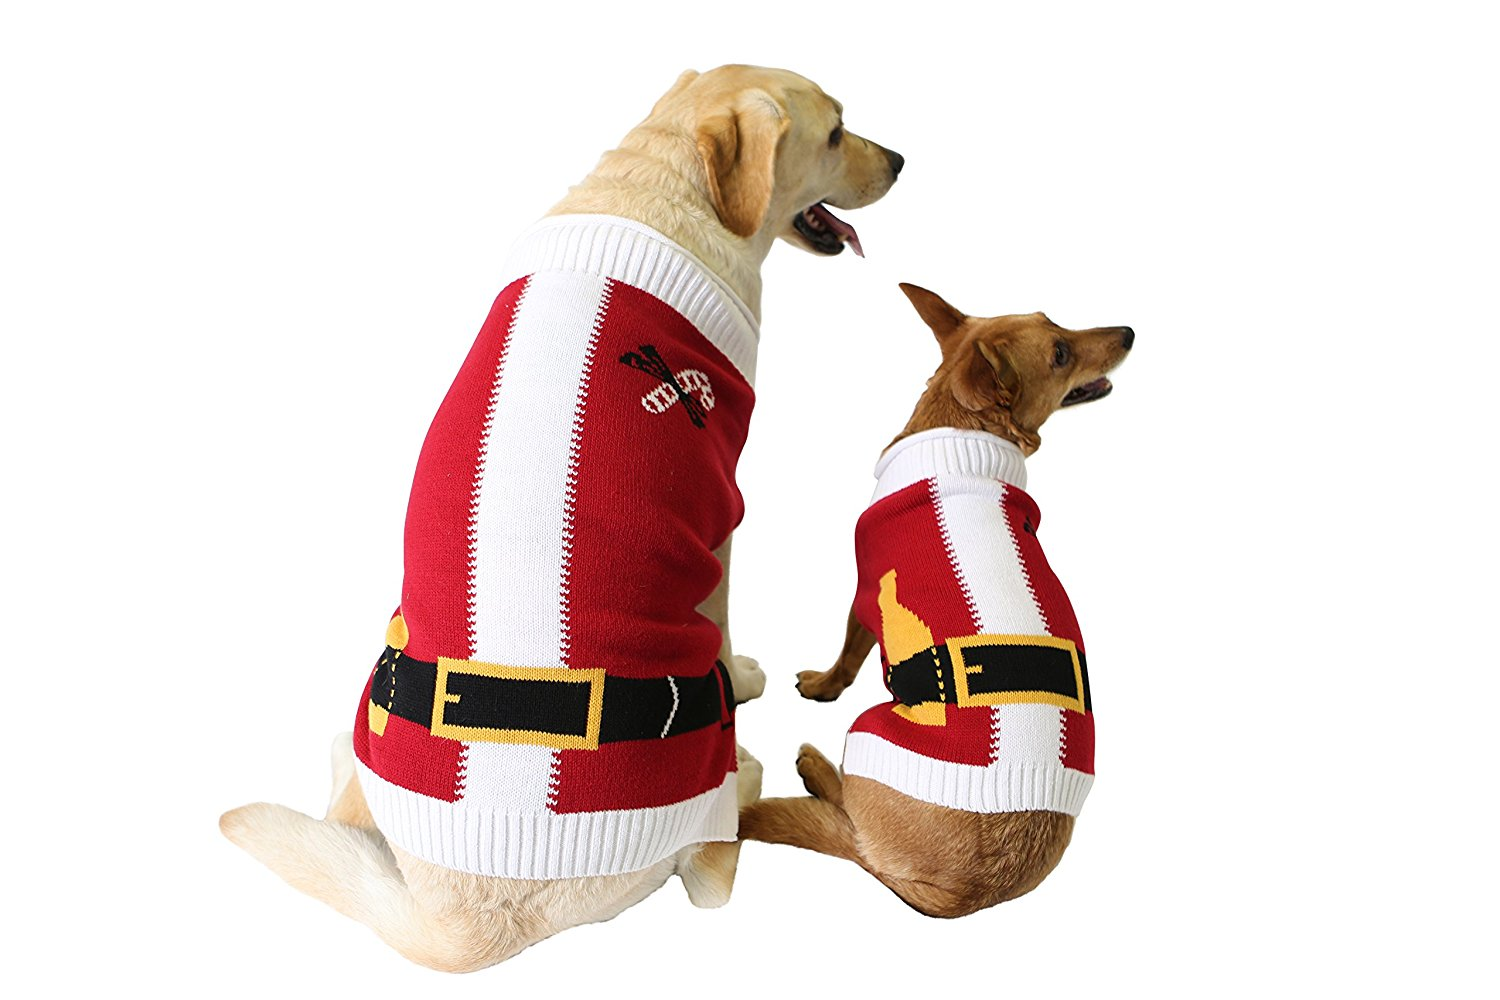 Santa Claus Ugly Christmas Sweater for Dogs